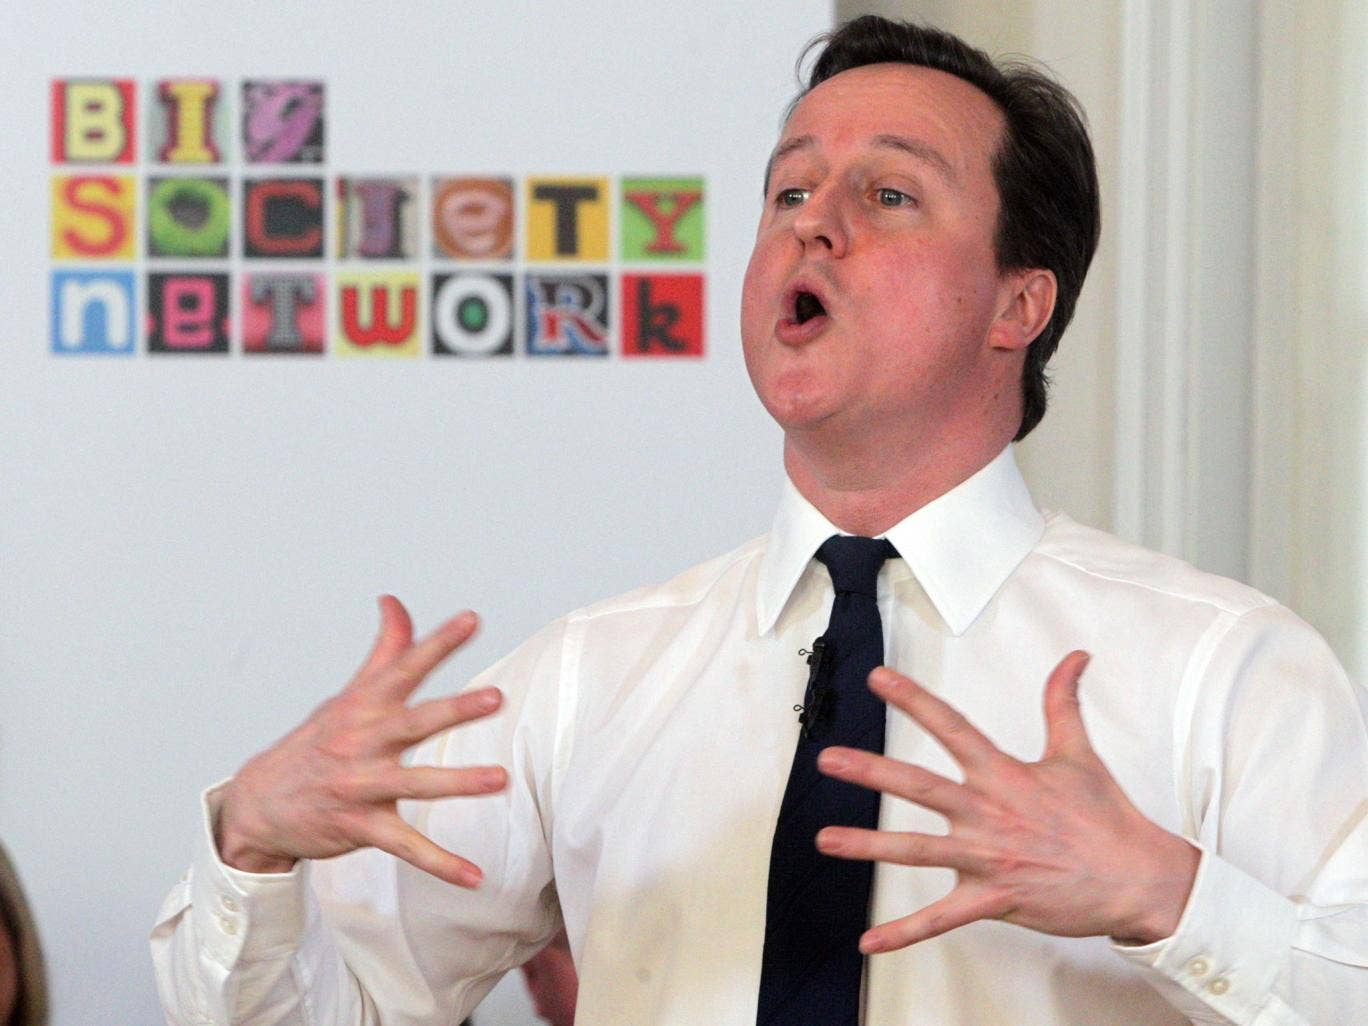 The Big Society that David Cameron once described as his 'passion' is a 'sham', which is hurting small charities increasingly having to work with powerful corporations in running services, campaigners have said